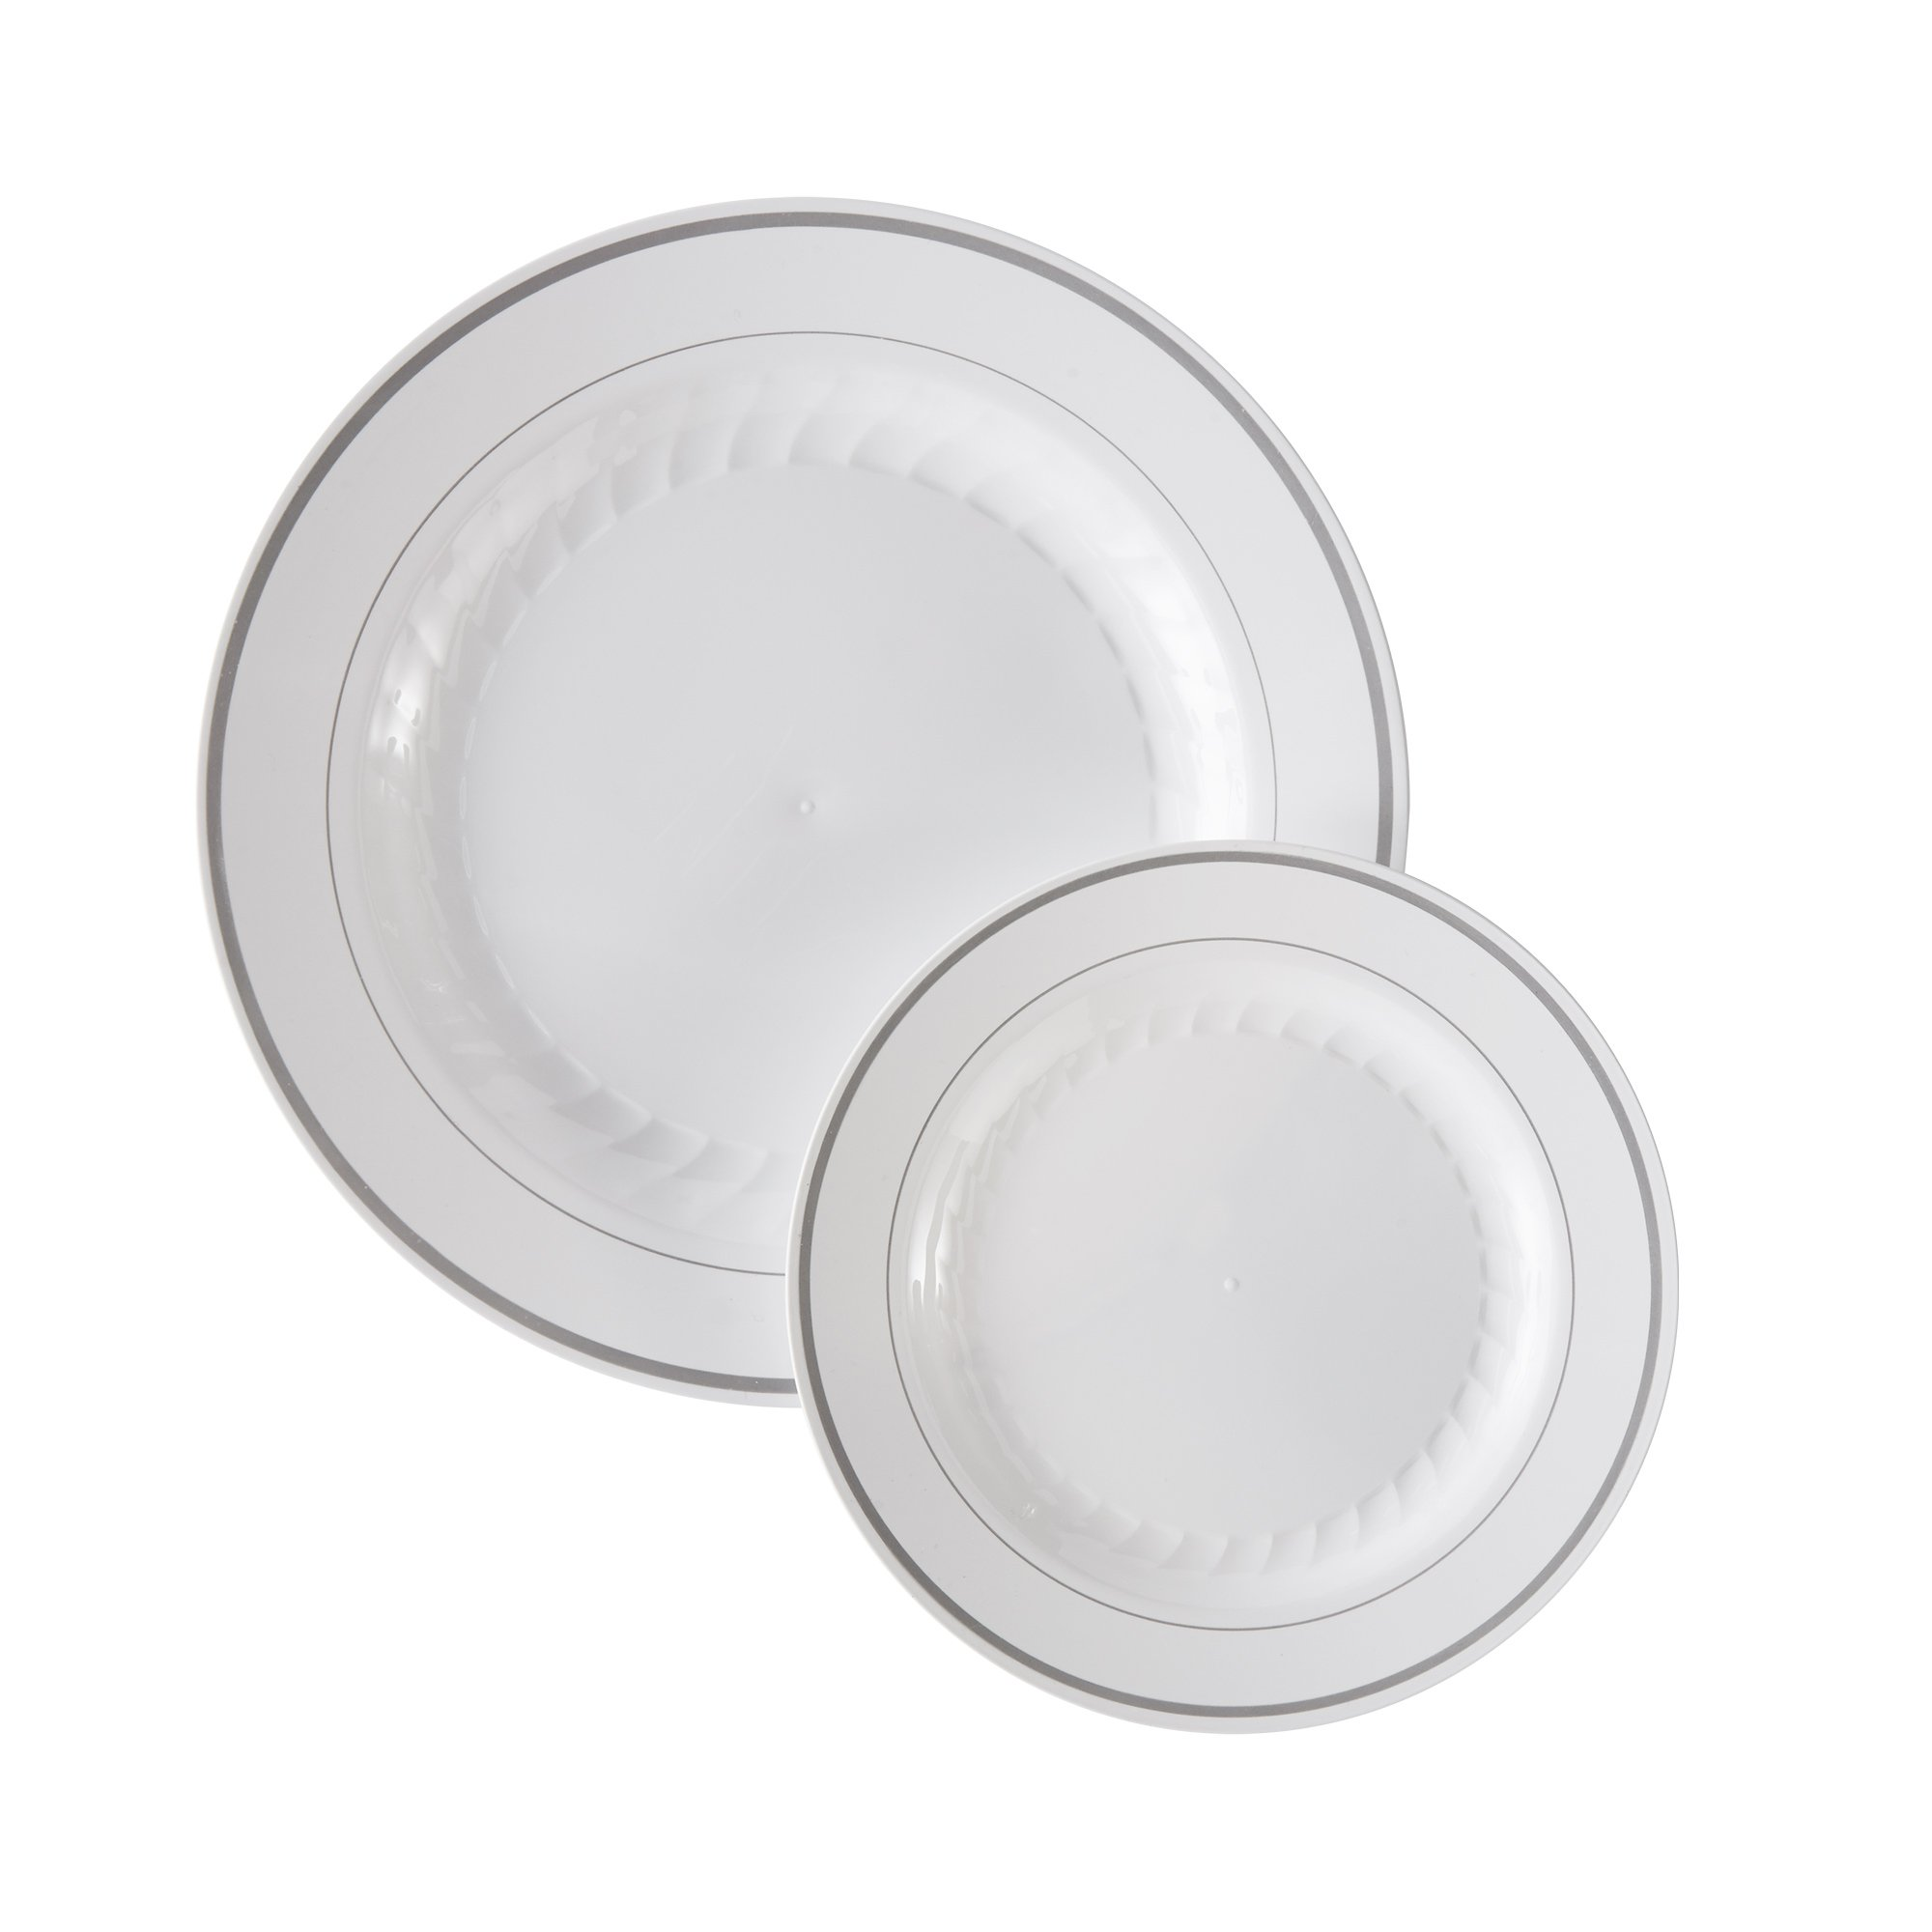 Masterpiece Premium Quality Heavyweight Plastic Plates: 25 Dinner Plates and 25 Salad Plates by Masterpiece